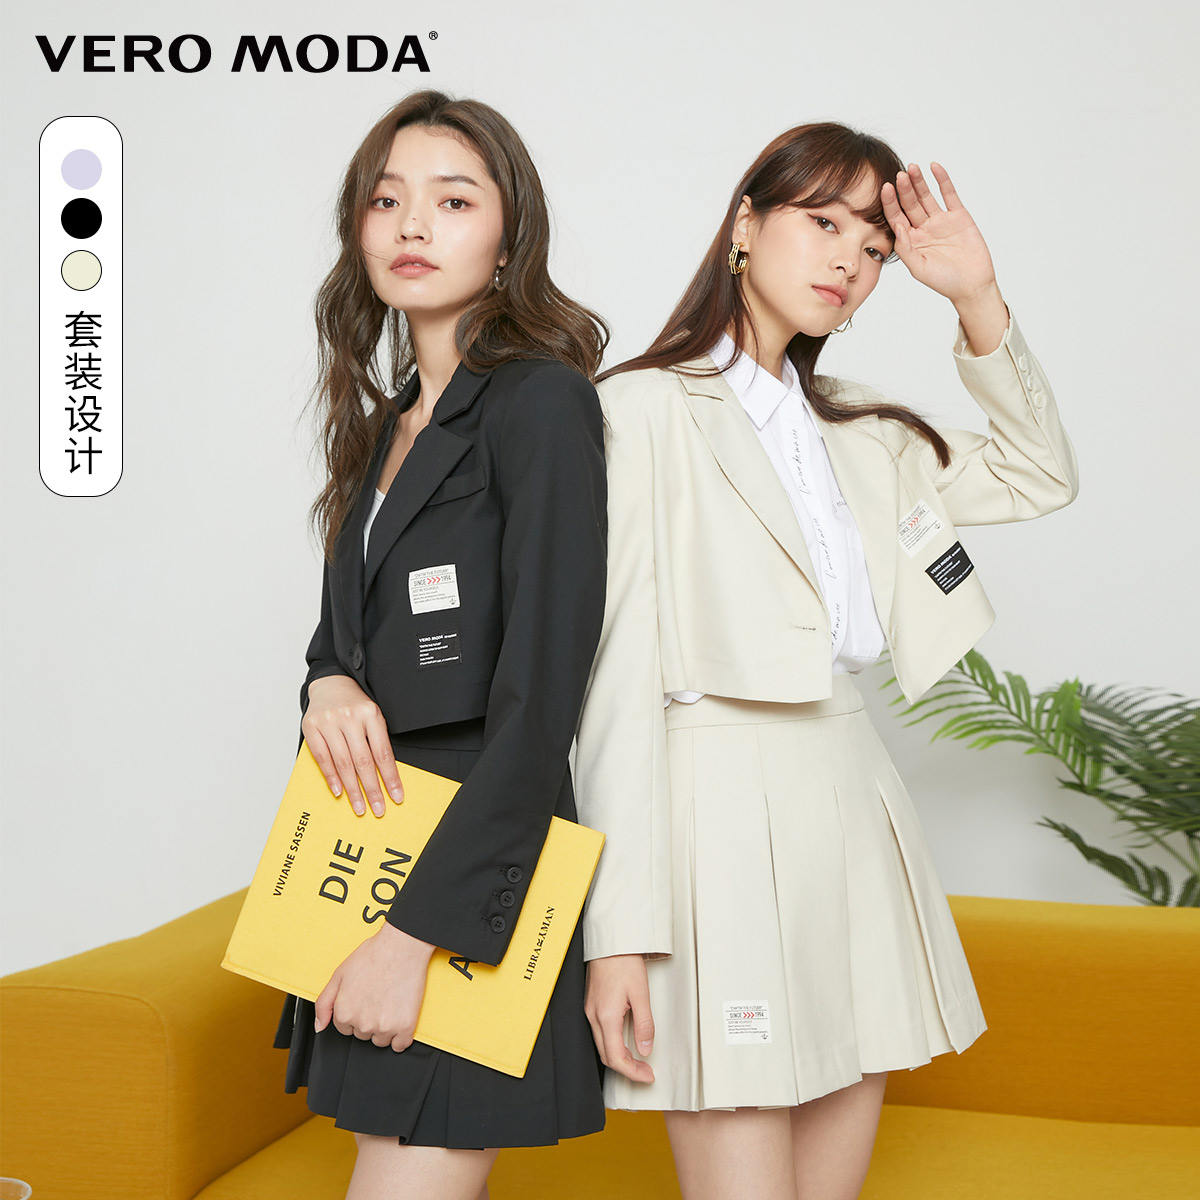 Vero Moda 2021 spring and summer new college style suit skirt suit women